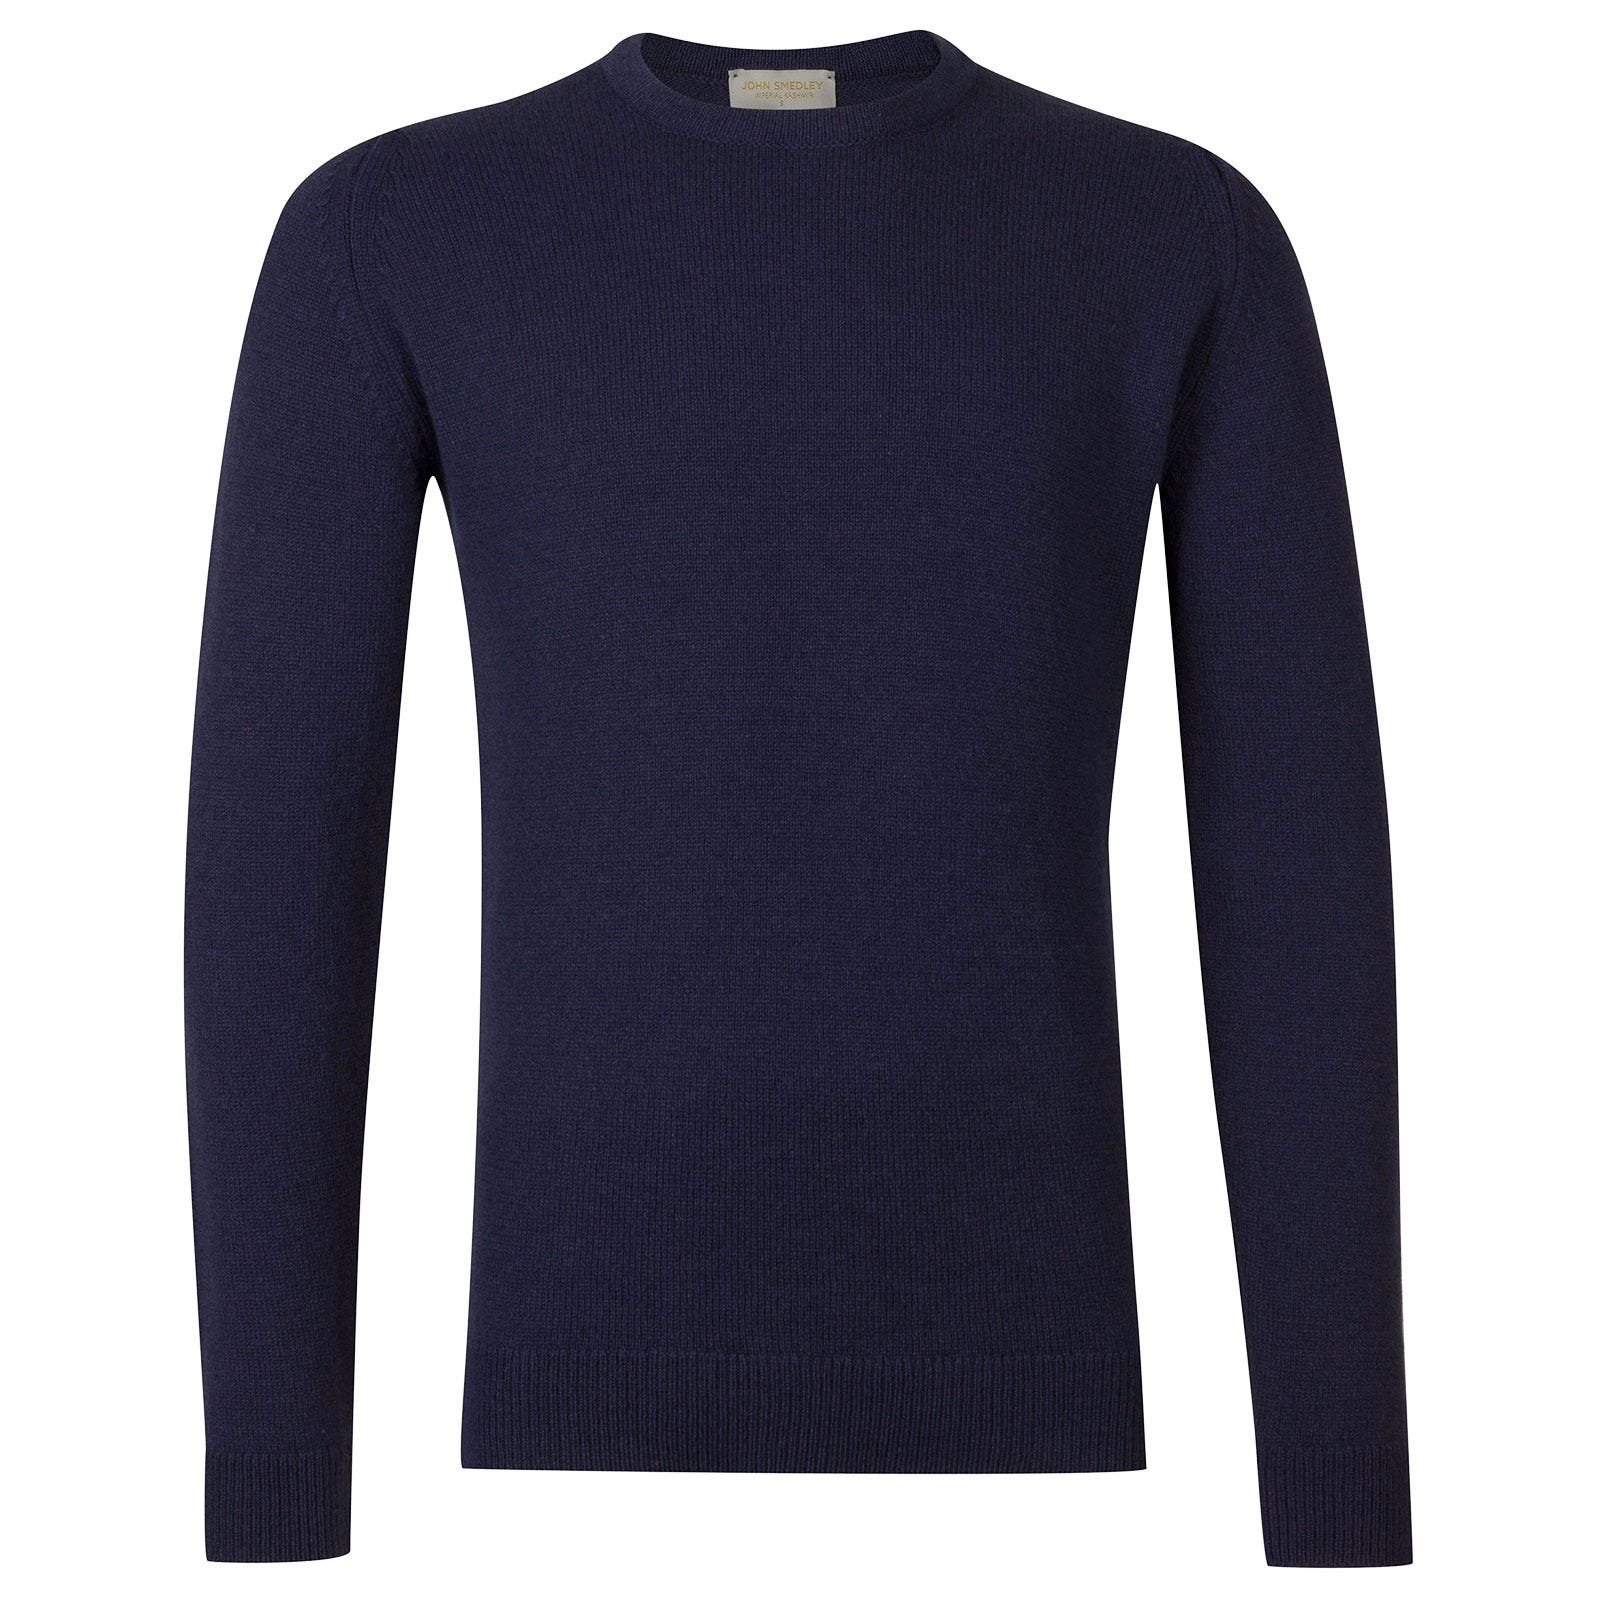 John Smedley Crowford Wool and Cashmere Pullover in Indigo-M